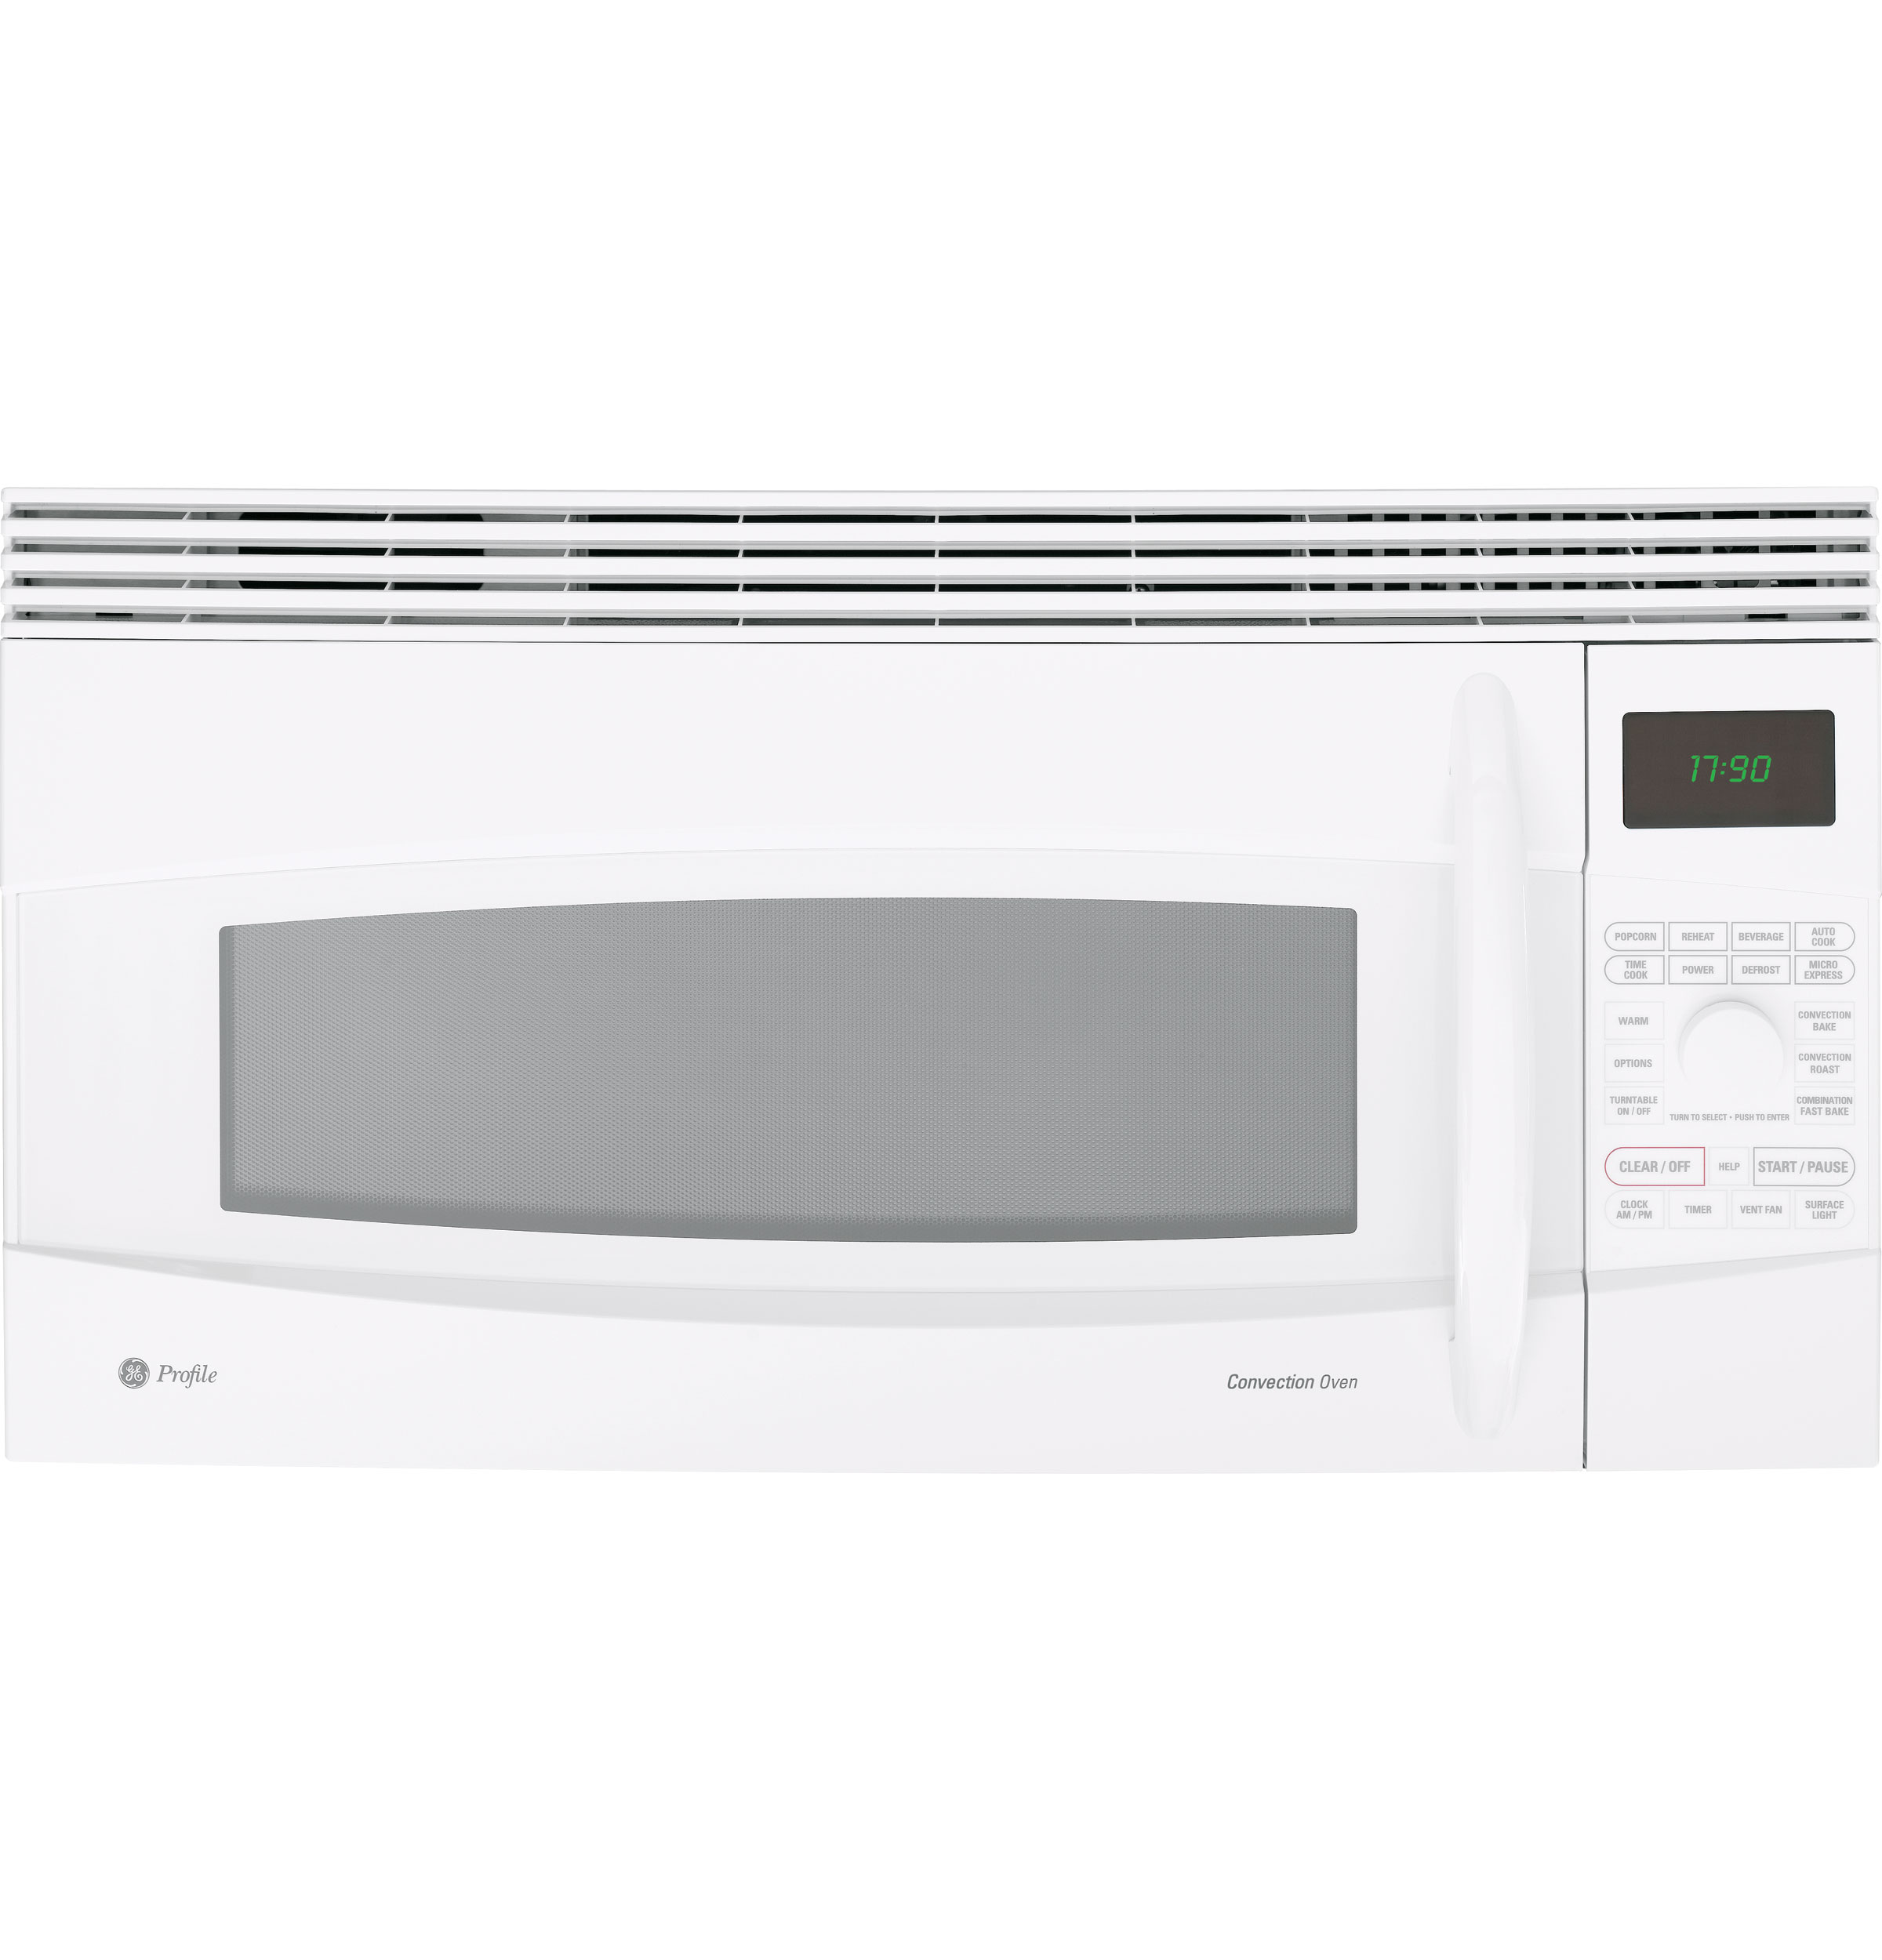 Convert Countertop Microwave To Over Range : ... Ft. Convection Over-the-Range Microwave Oven - The Monogram Collection